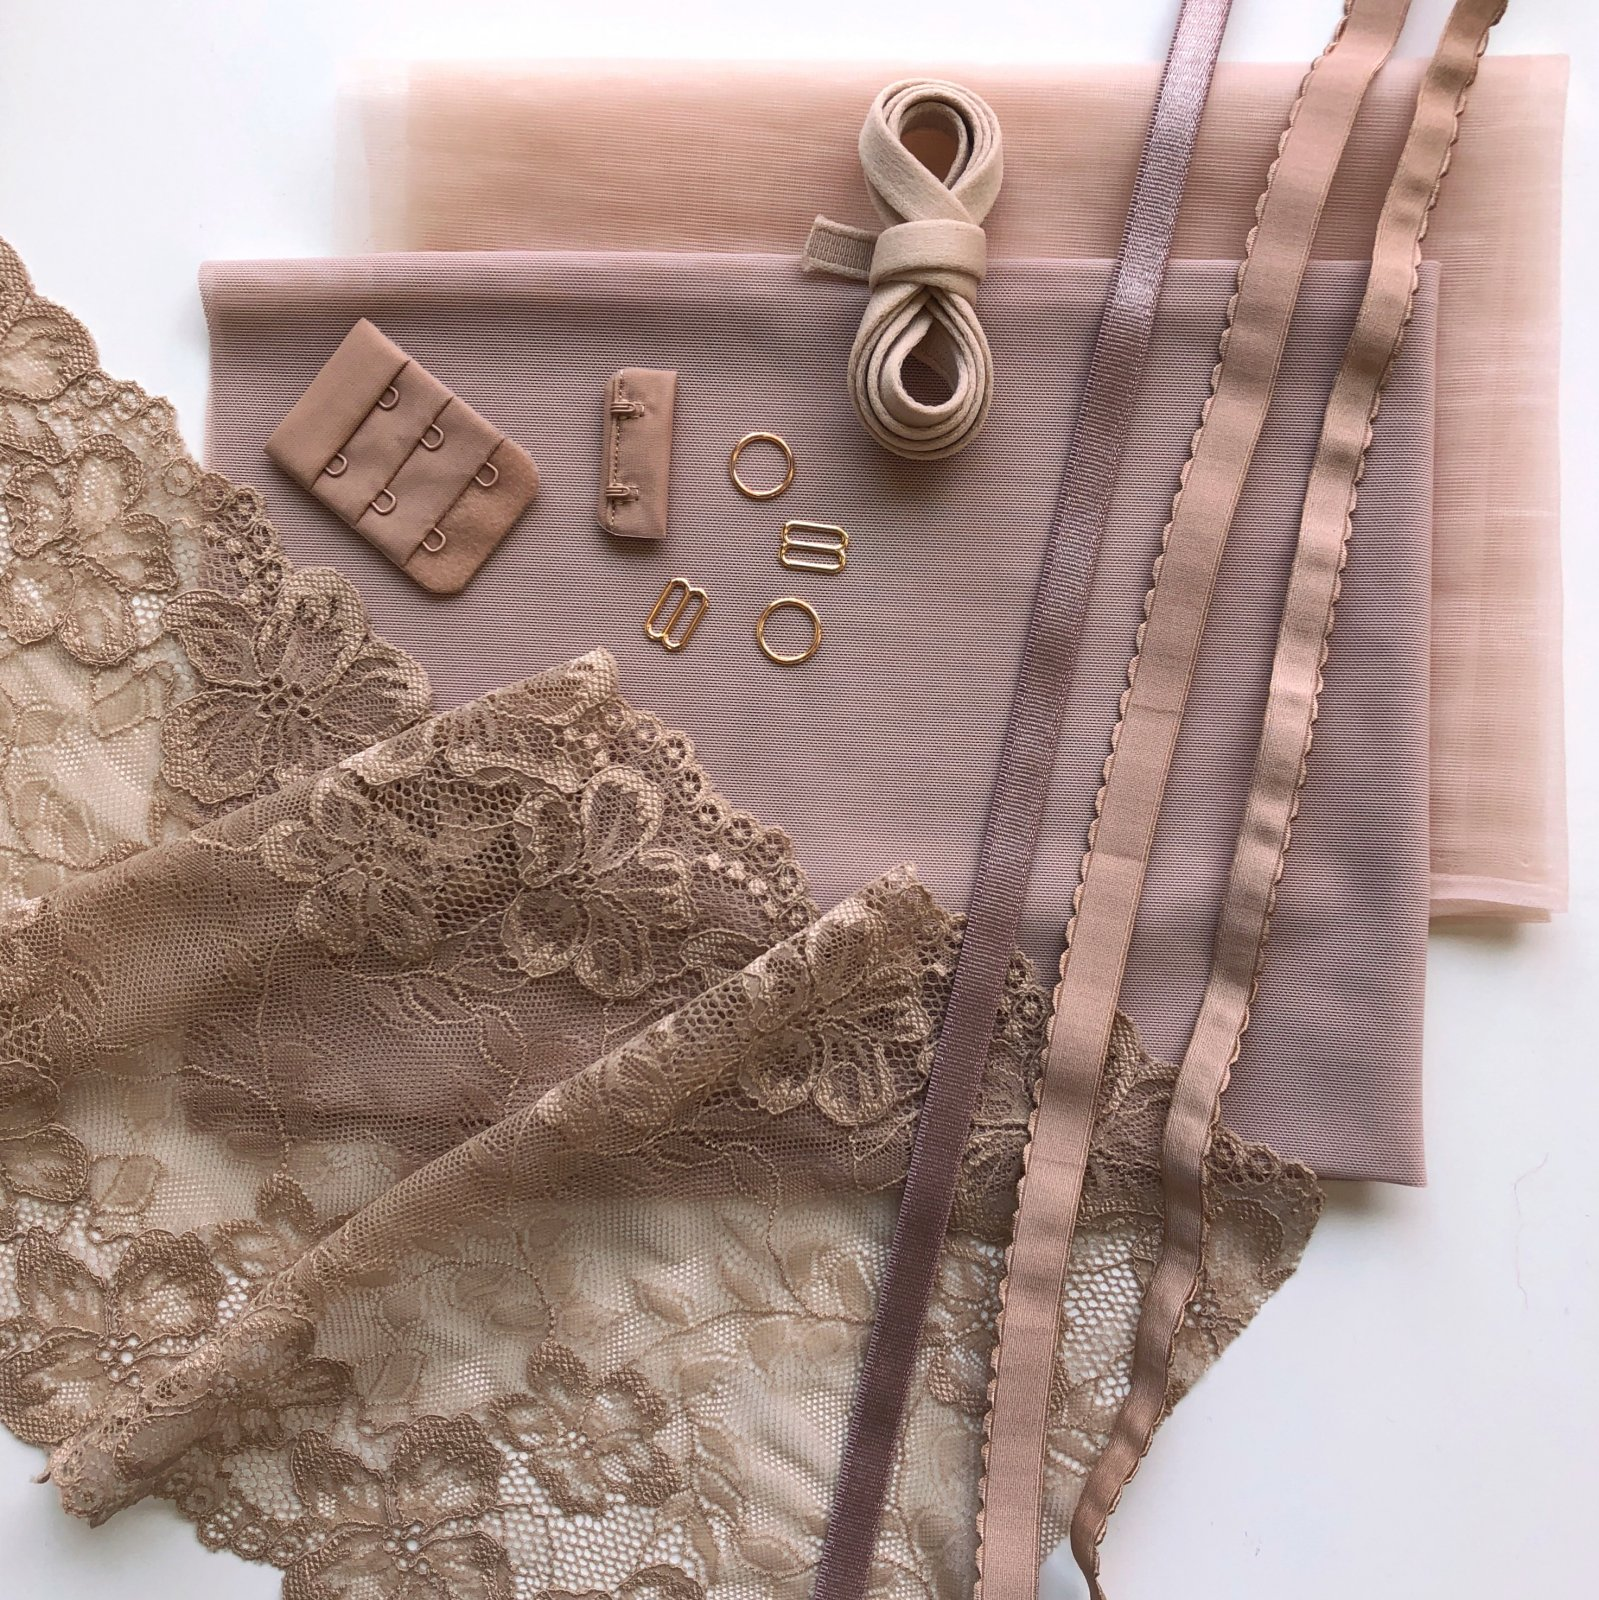 Lace Underwire Bra Kit - Latte